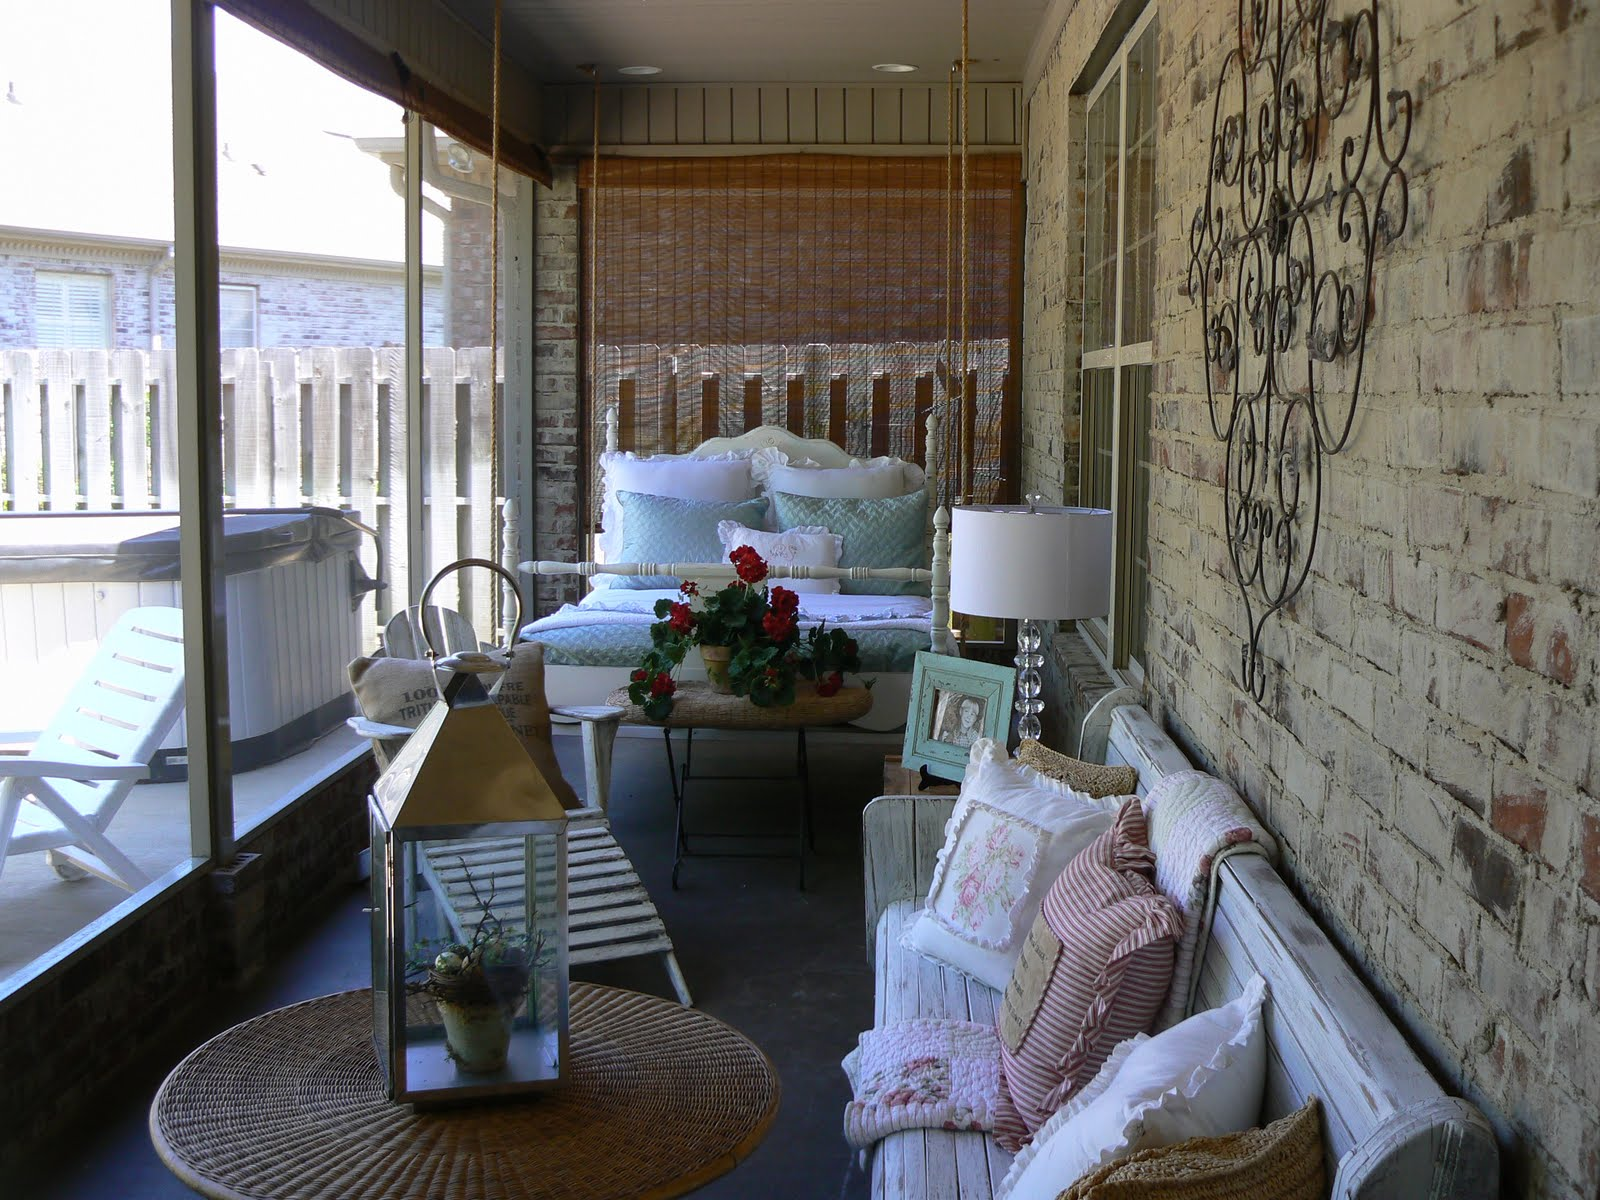 A Well Loved Home: Creating a shabby chic porch.